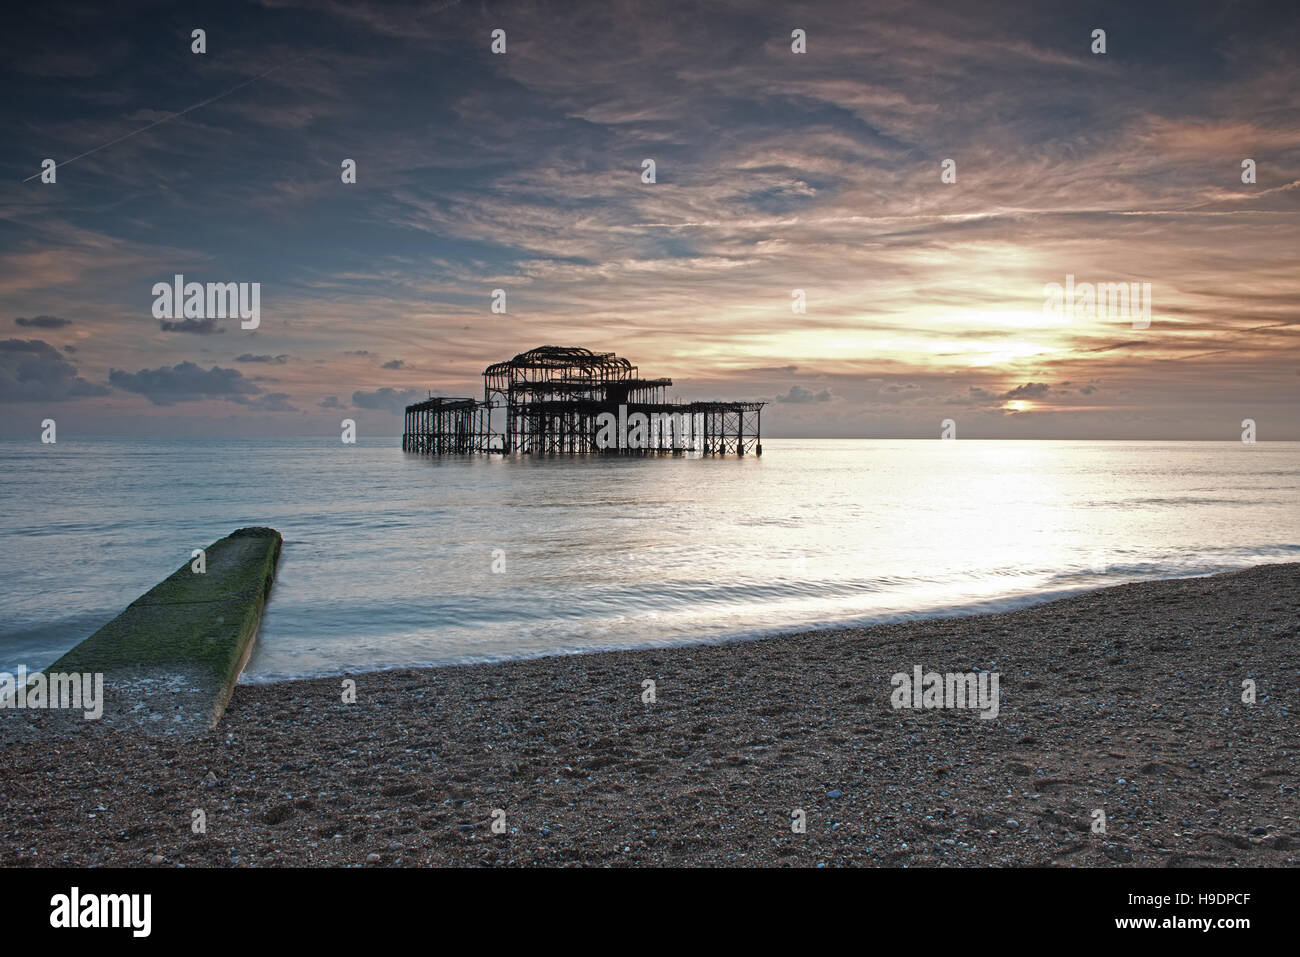 Remains of the West Pier at sunset, Brighton, East Sussex, England, Uk, Gb - Stock Image